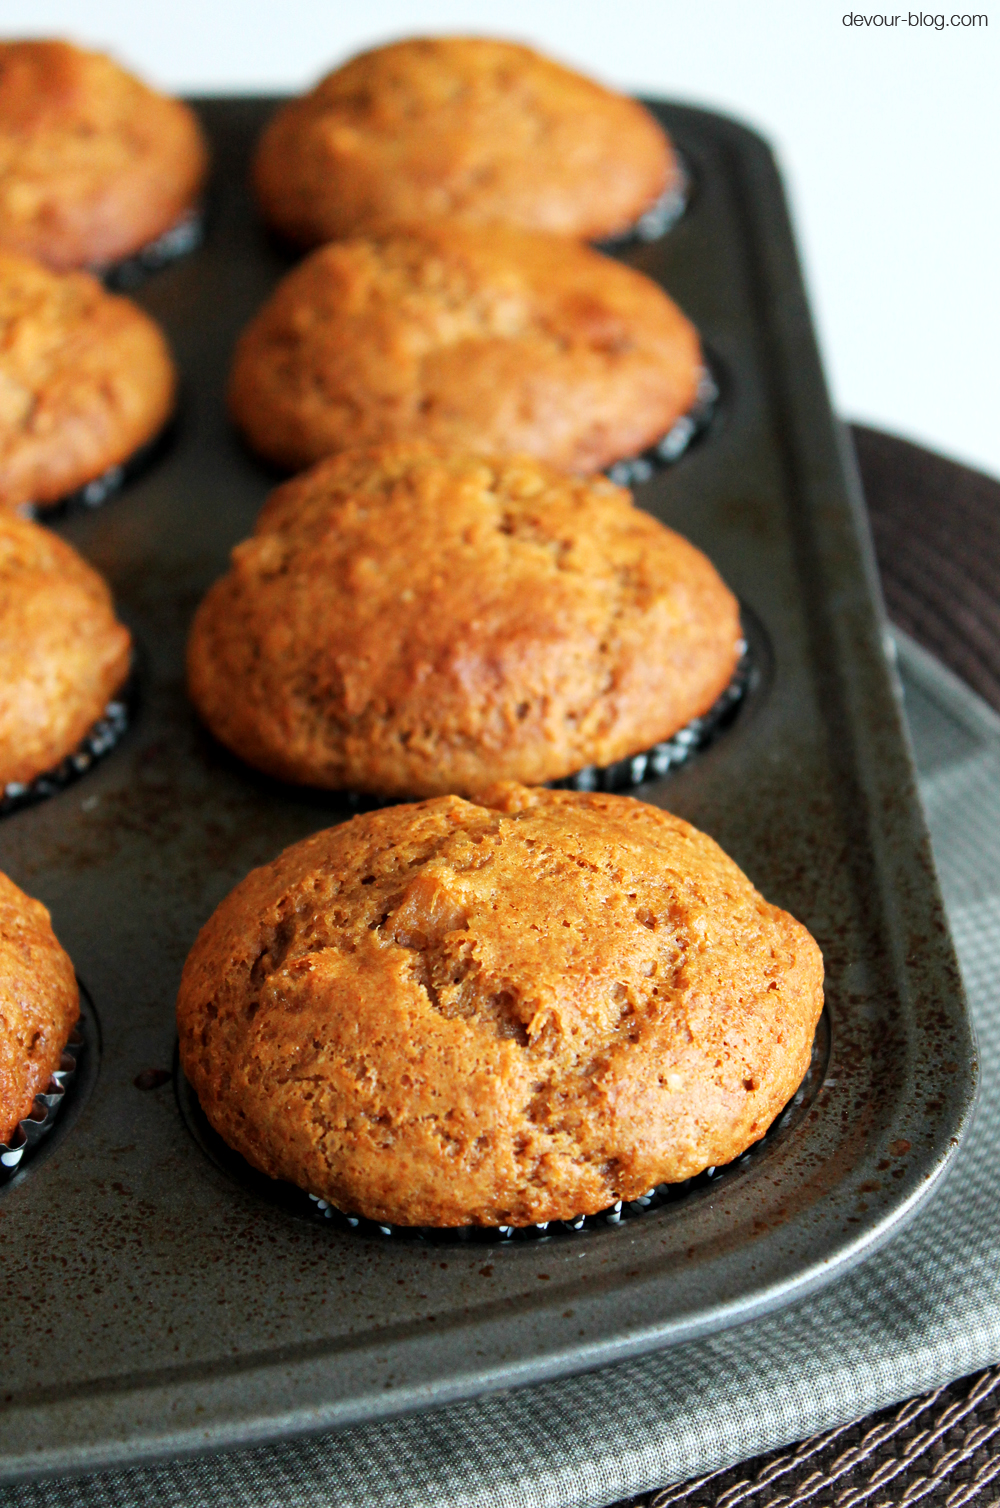 Sweet Potato Ginger Muffins. devour-blog.com